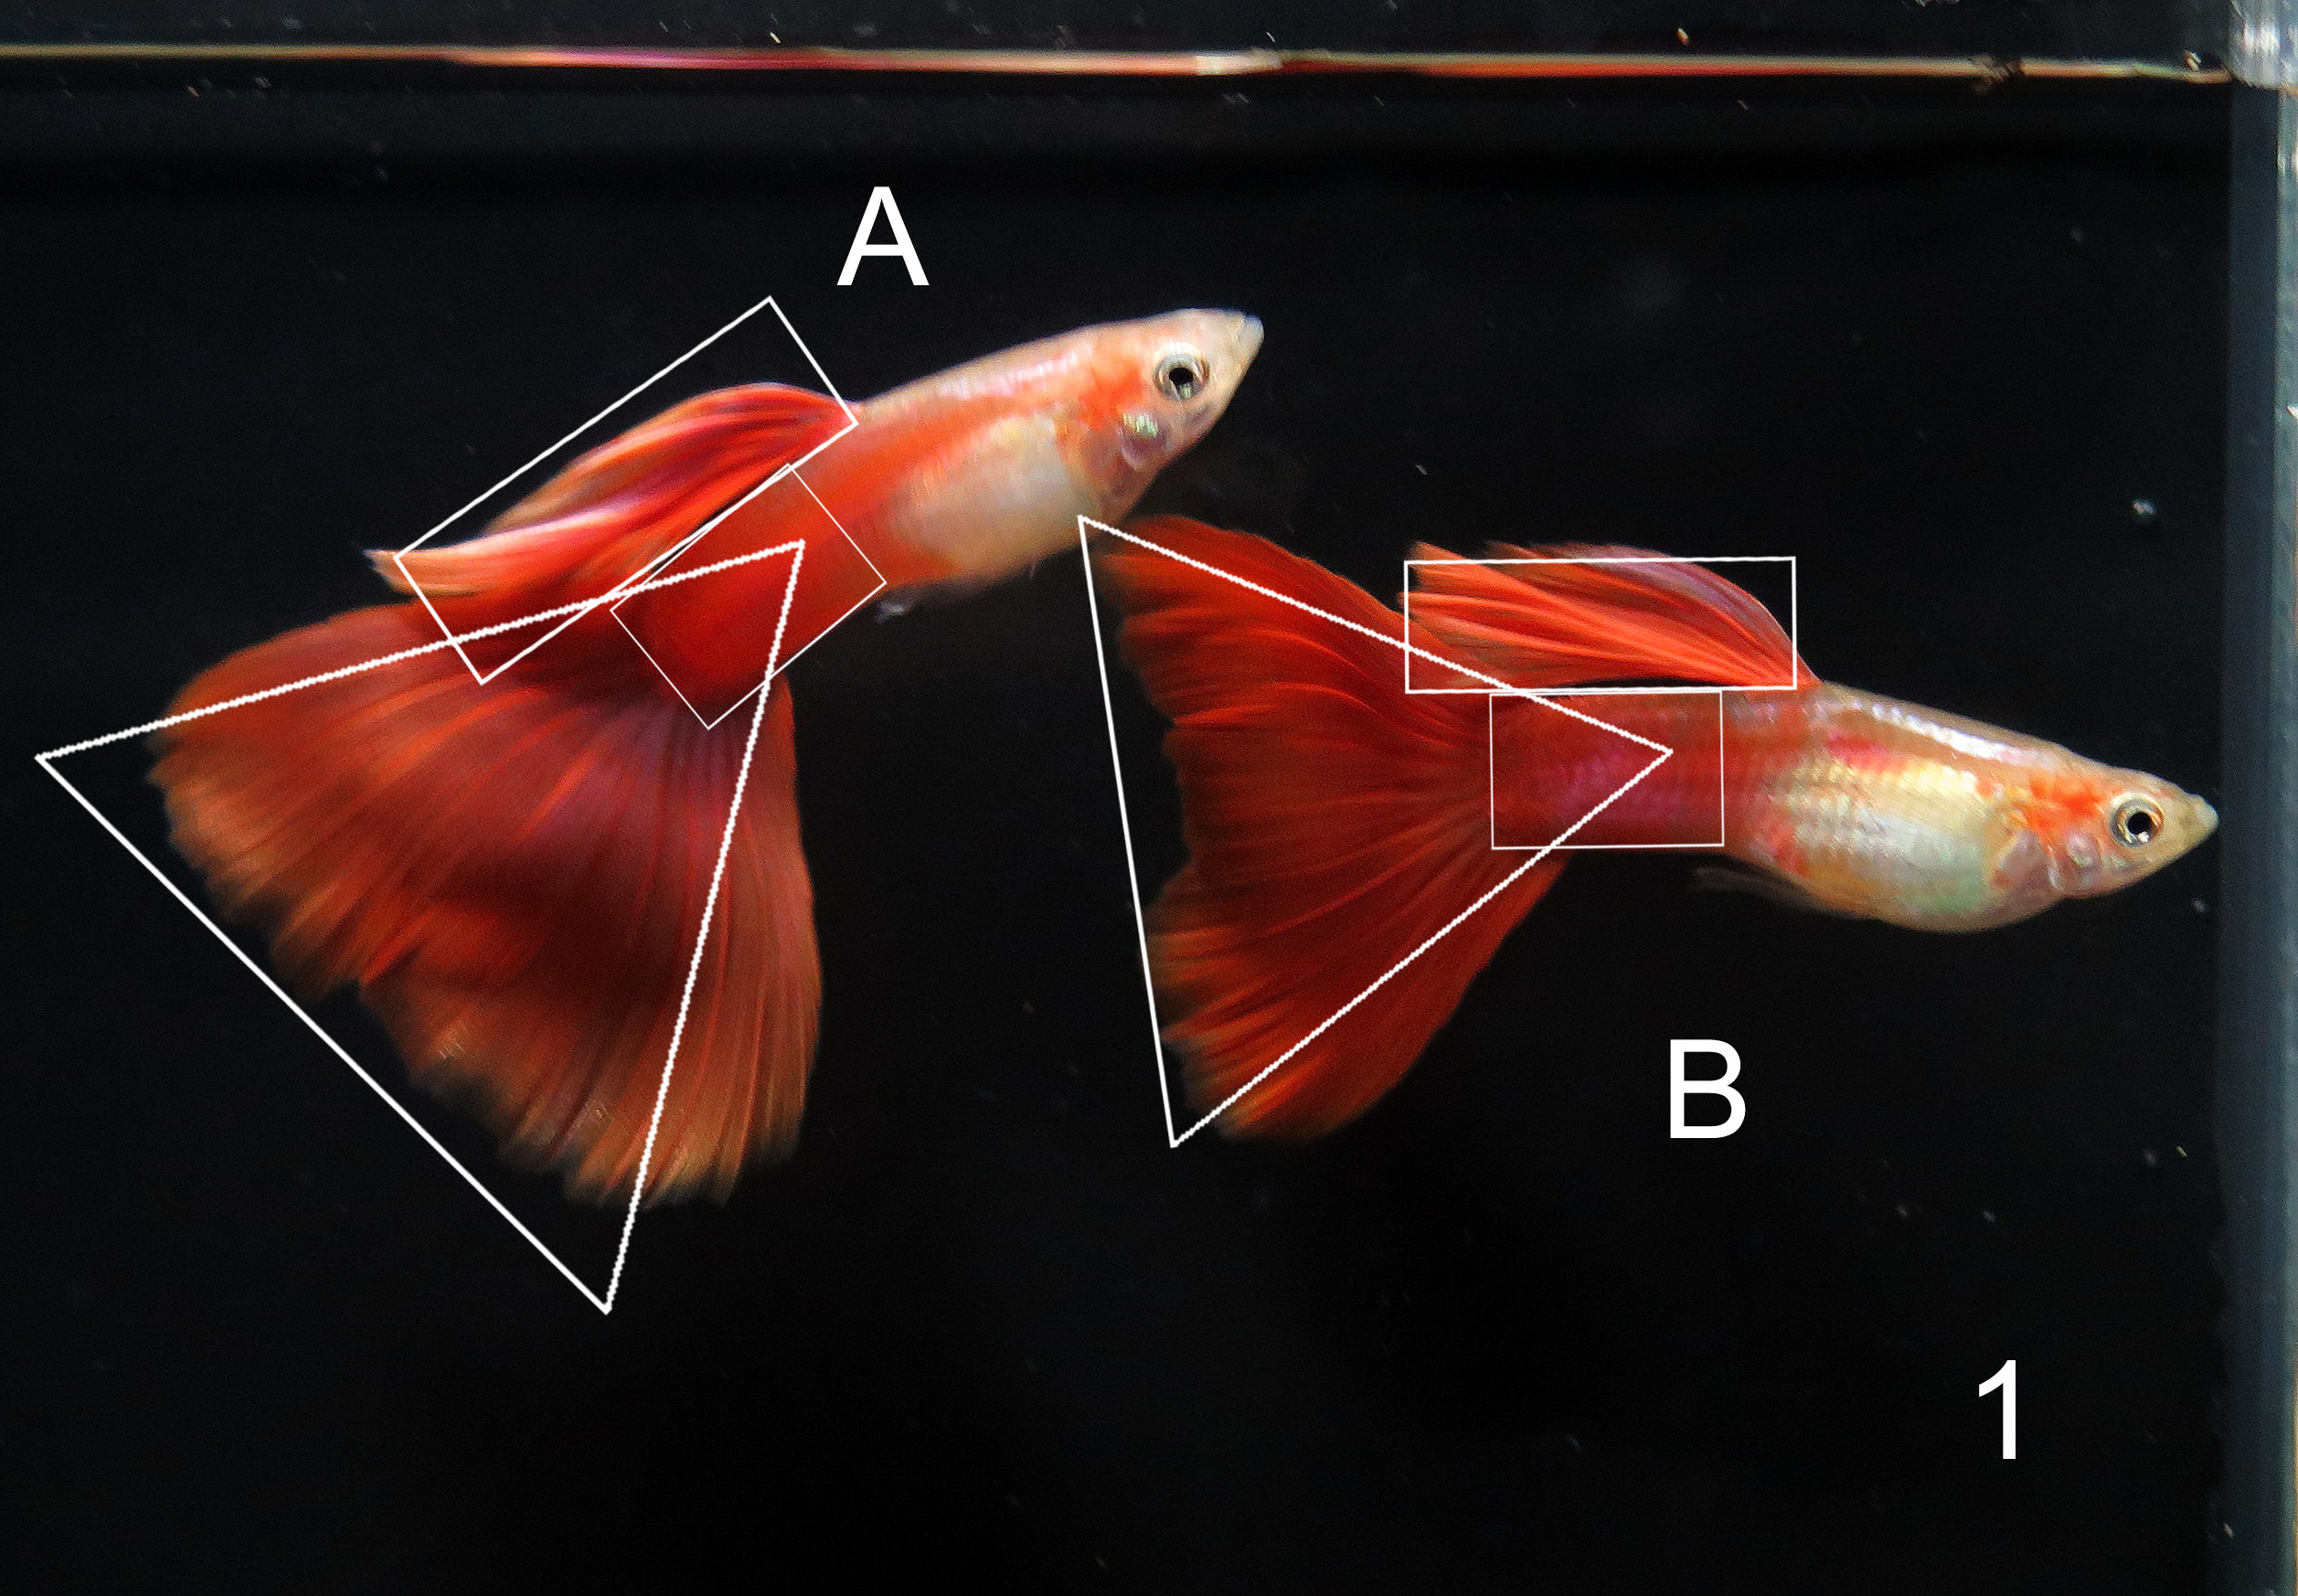 Red guppy tank entry shape judging